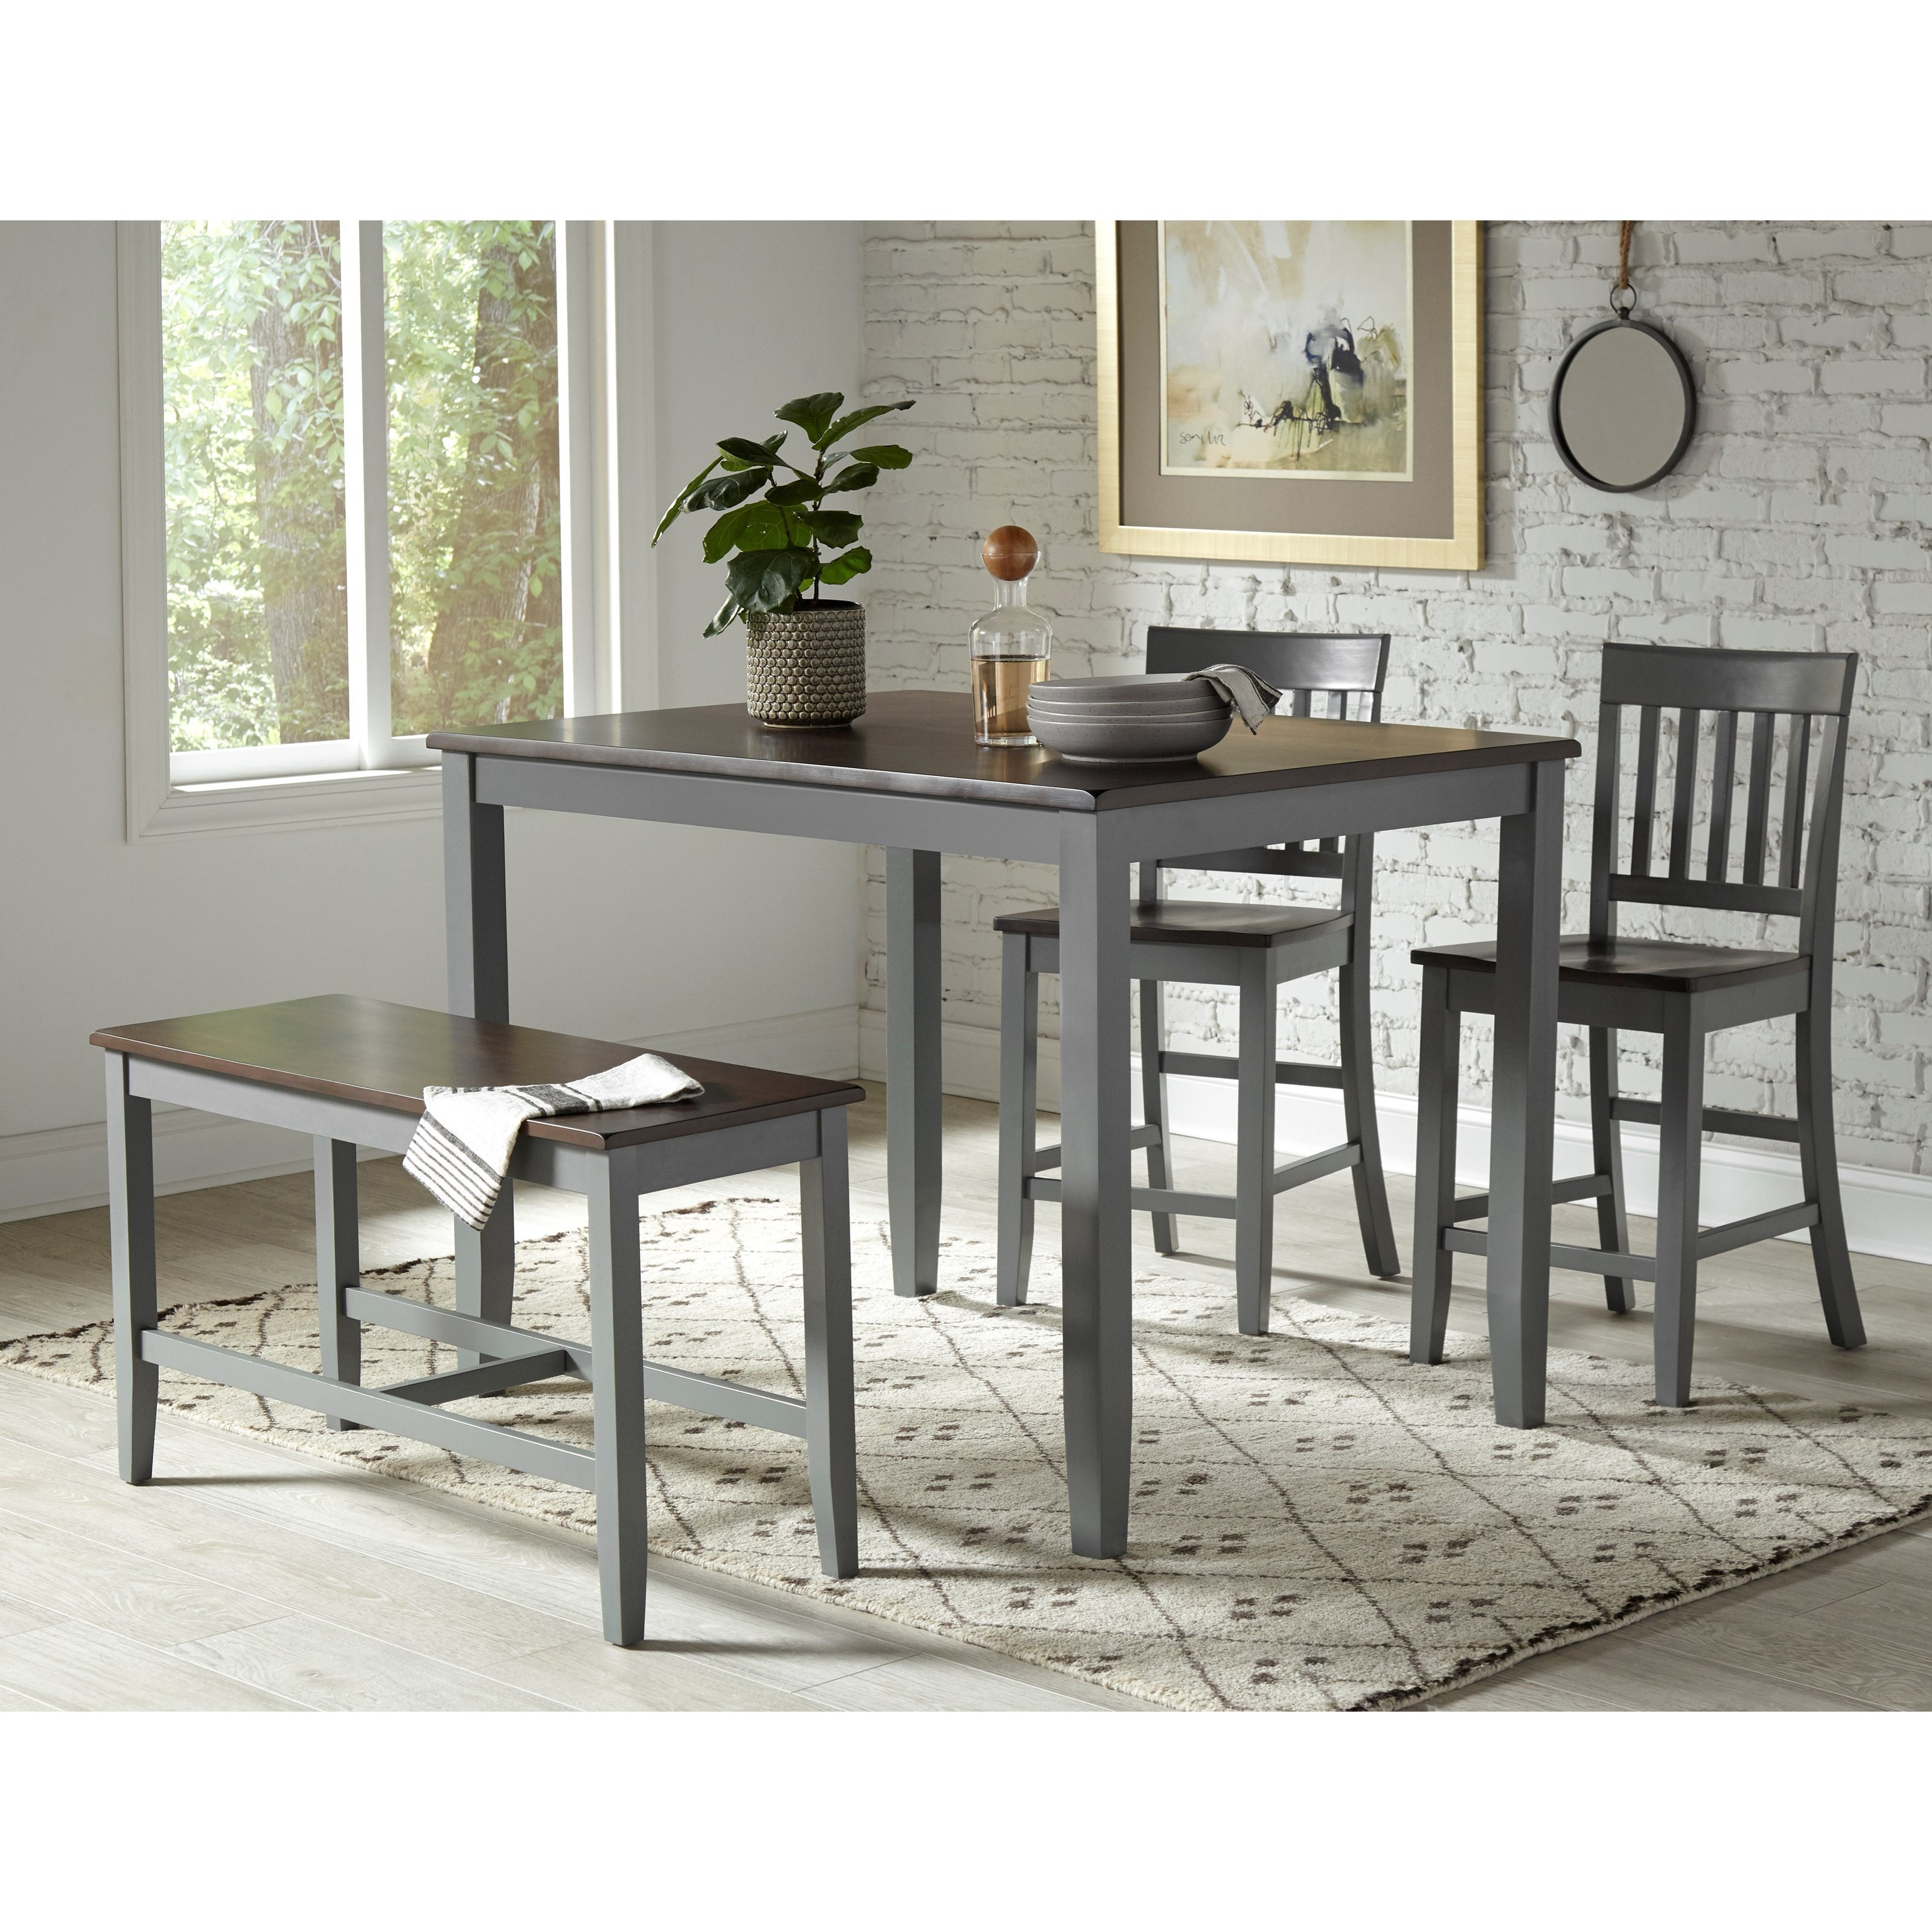 Decatur Lane 4 Pack Counter Height Group by Jofran at Jofran